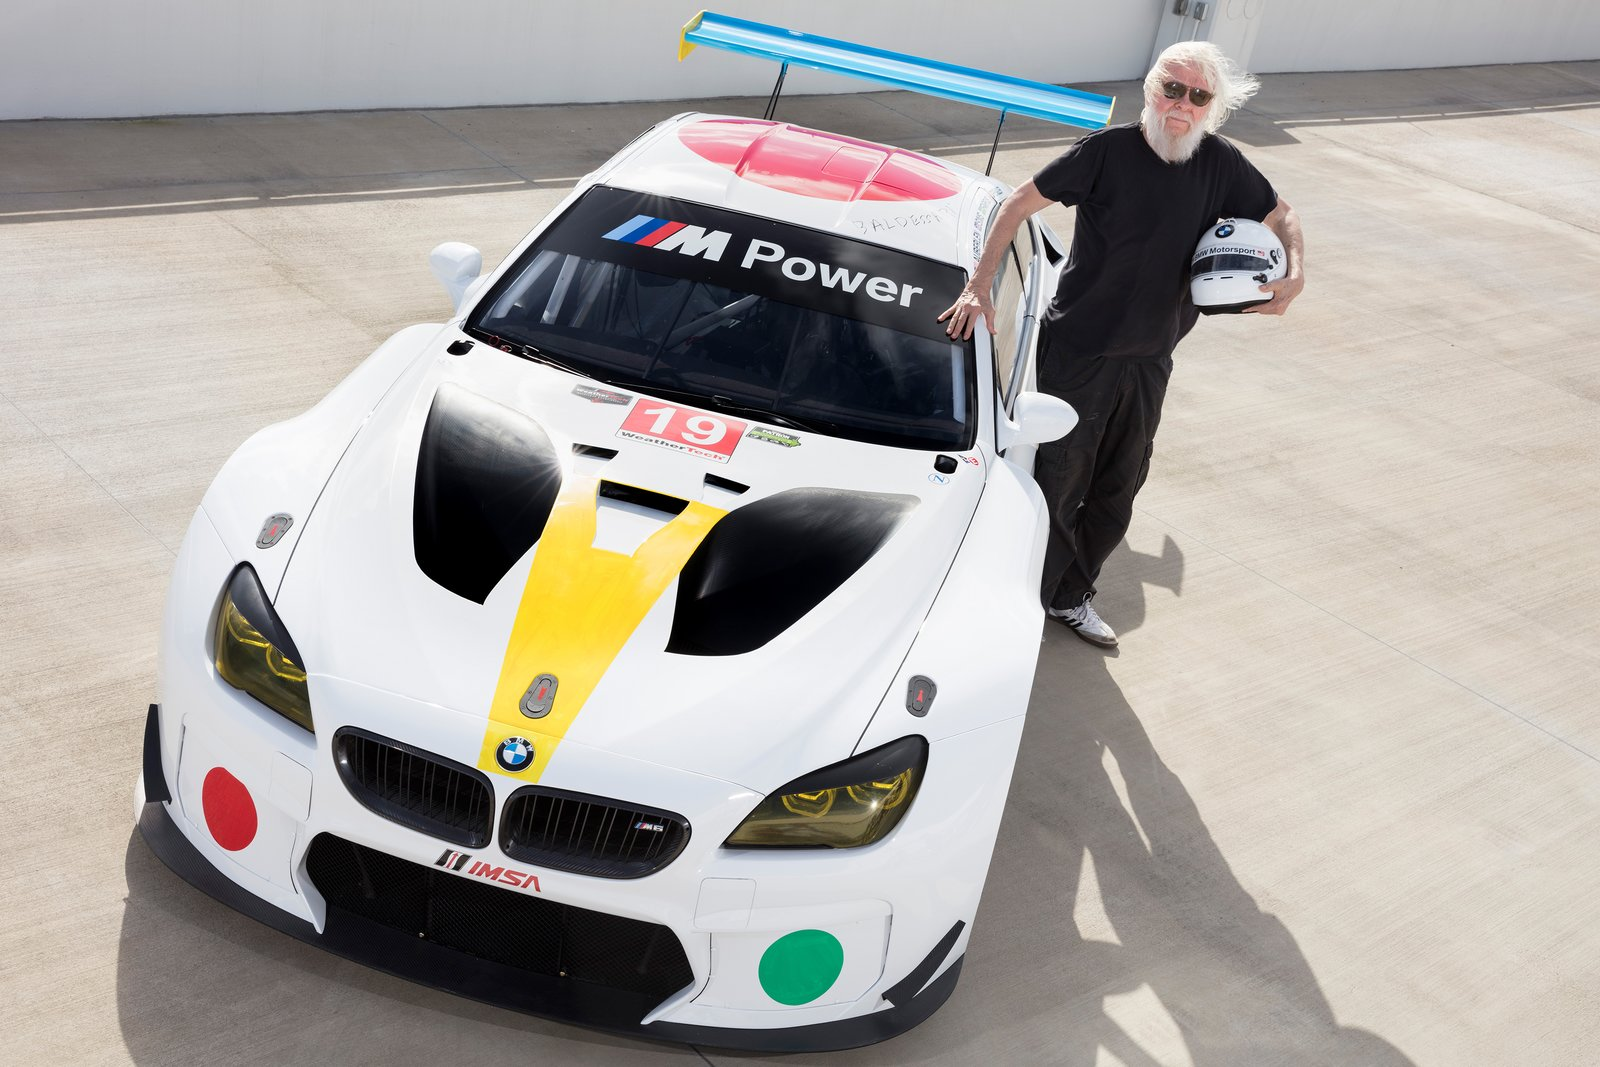 Photo 1 of 12 in John Baldessari Blazes a Trail at the Daytona International Speedway With BMW Art Car #19